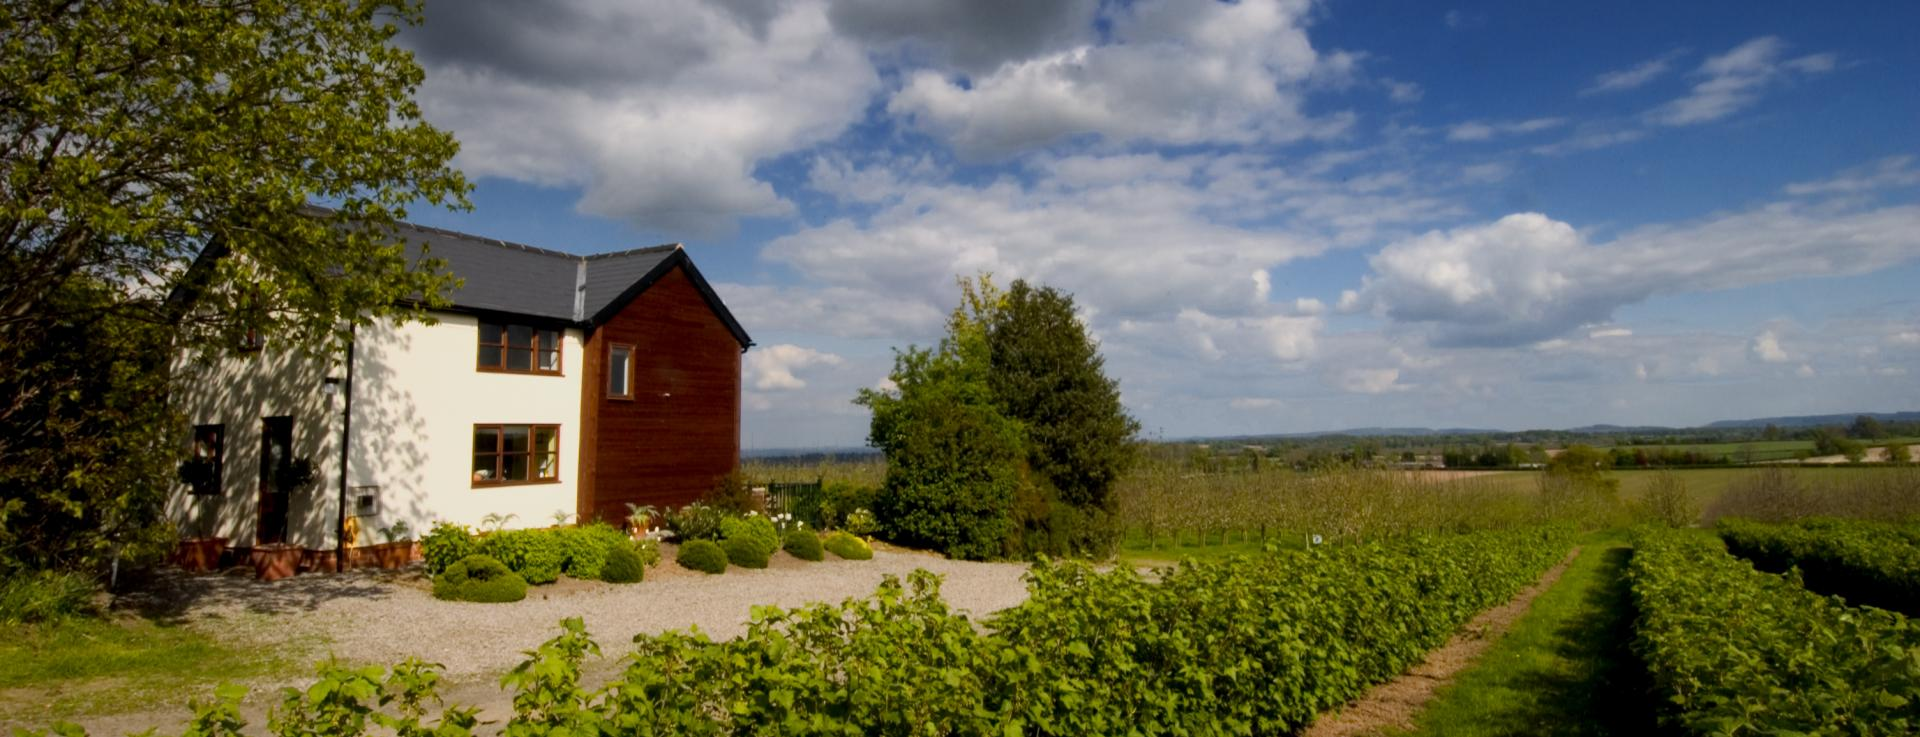 Field holiday cottage